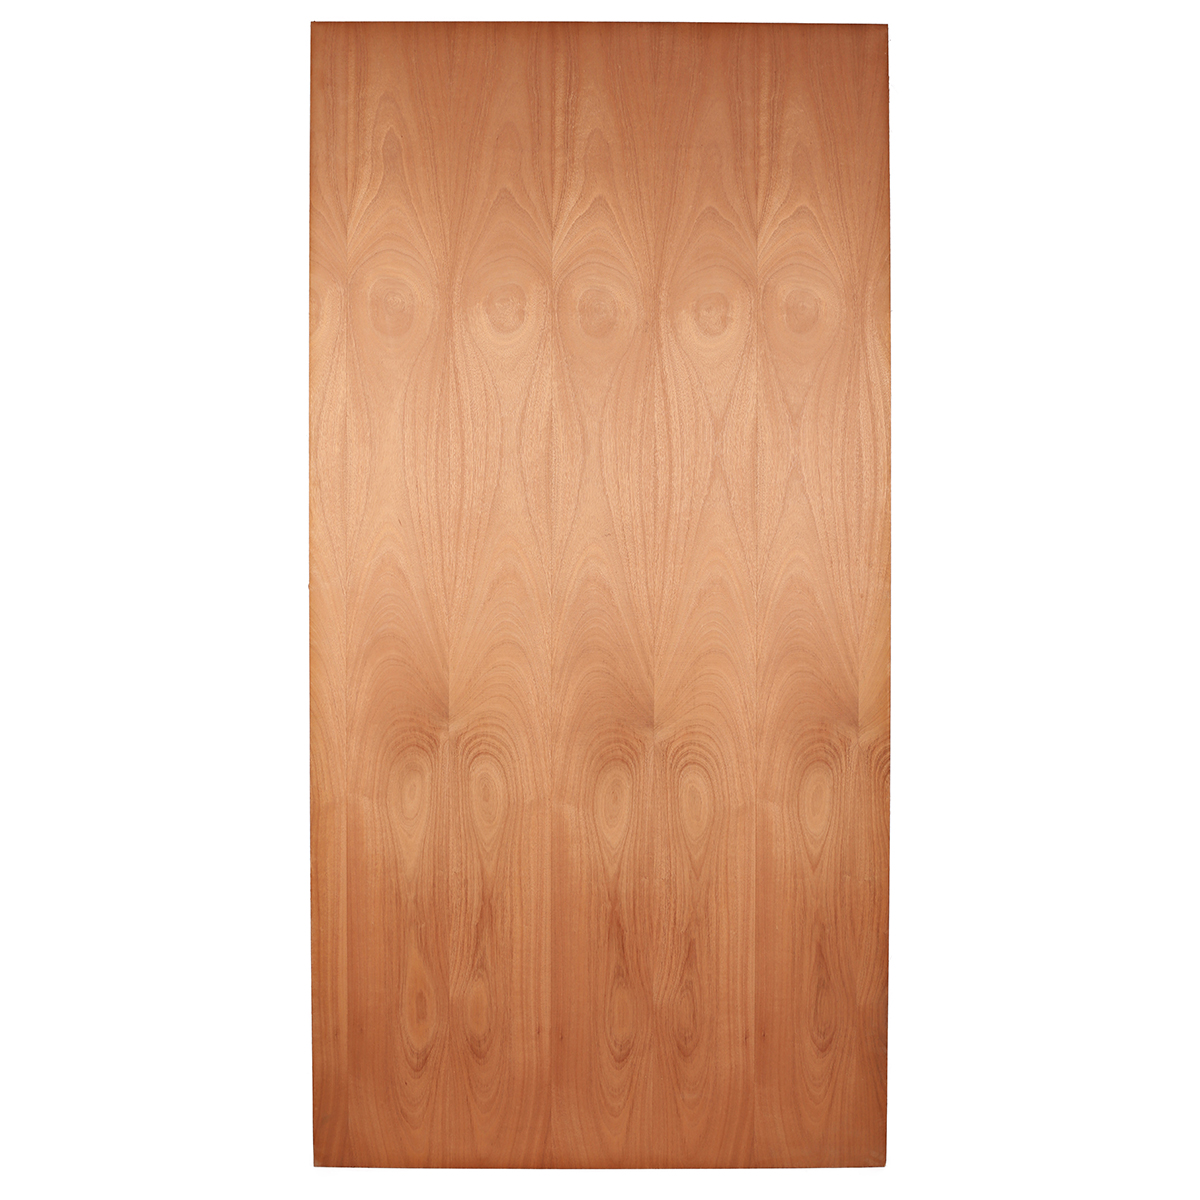 Quot african mahogany x plywood g s